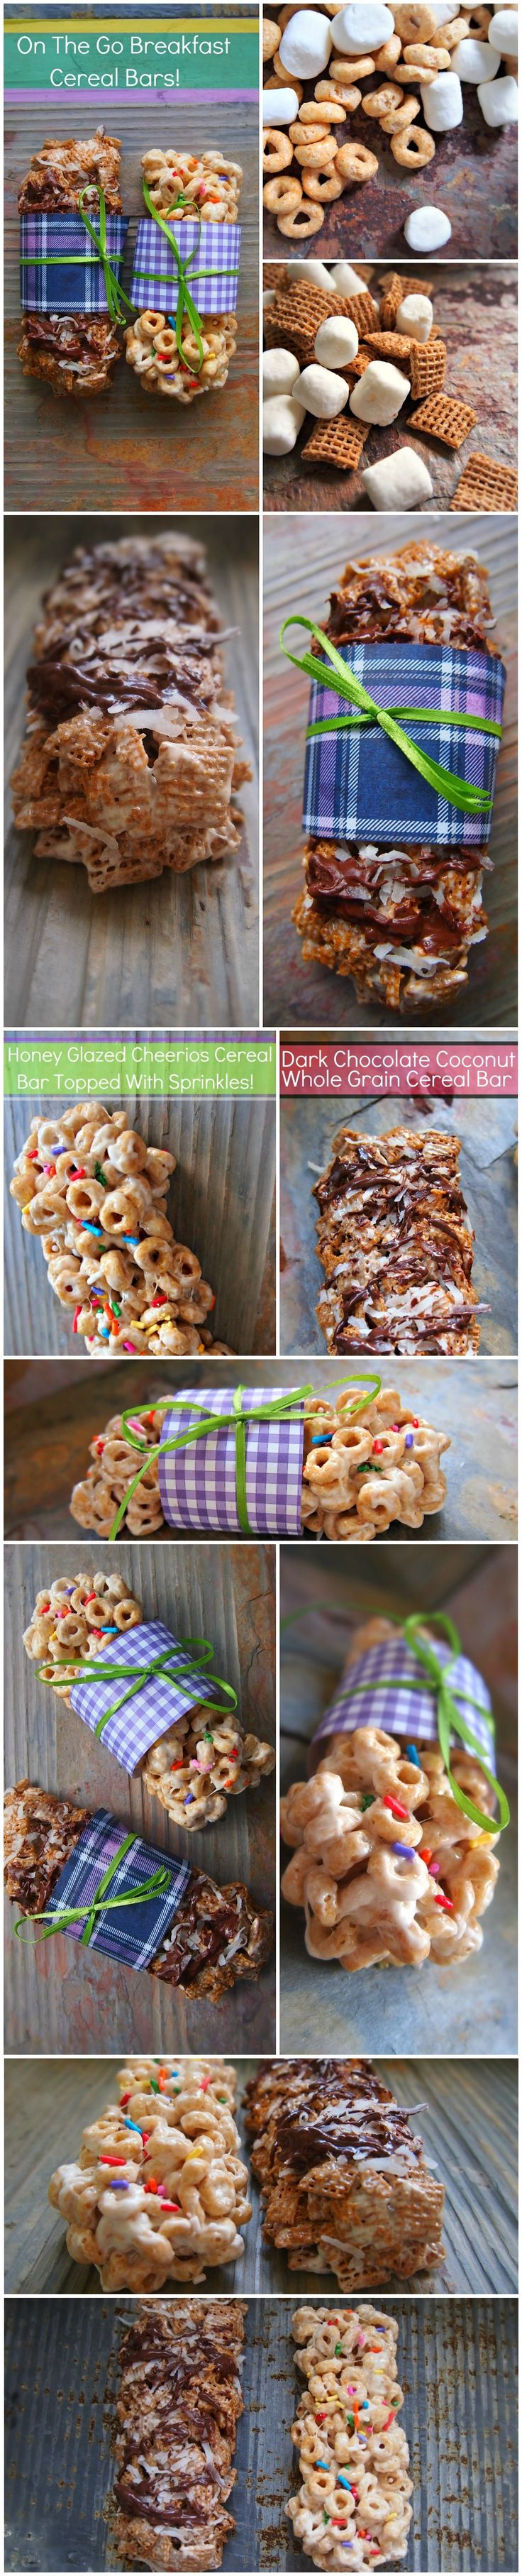 On The Go Cereal Bars!Mcnitt Cerealbar, Cerealbar Tarlynnmcnitt, S'More Bar, Cereal Recipes For Treats, S'Mores Bar, Bar Recipe, Homemade Cereal Bars, Cereal Bar Tarlynn Mcnitt, Mcnitt Cereal Bar